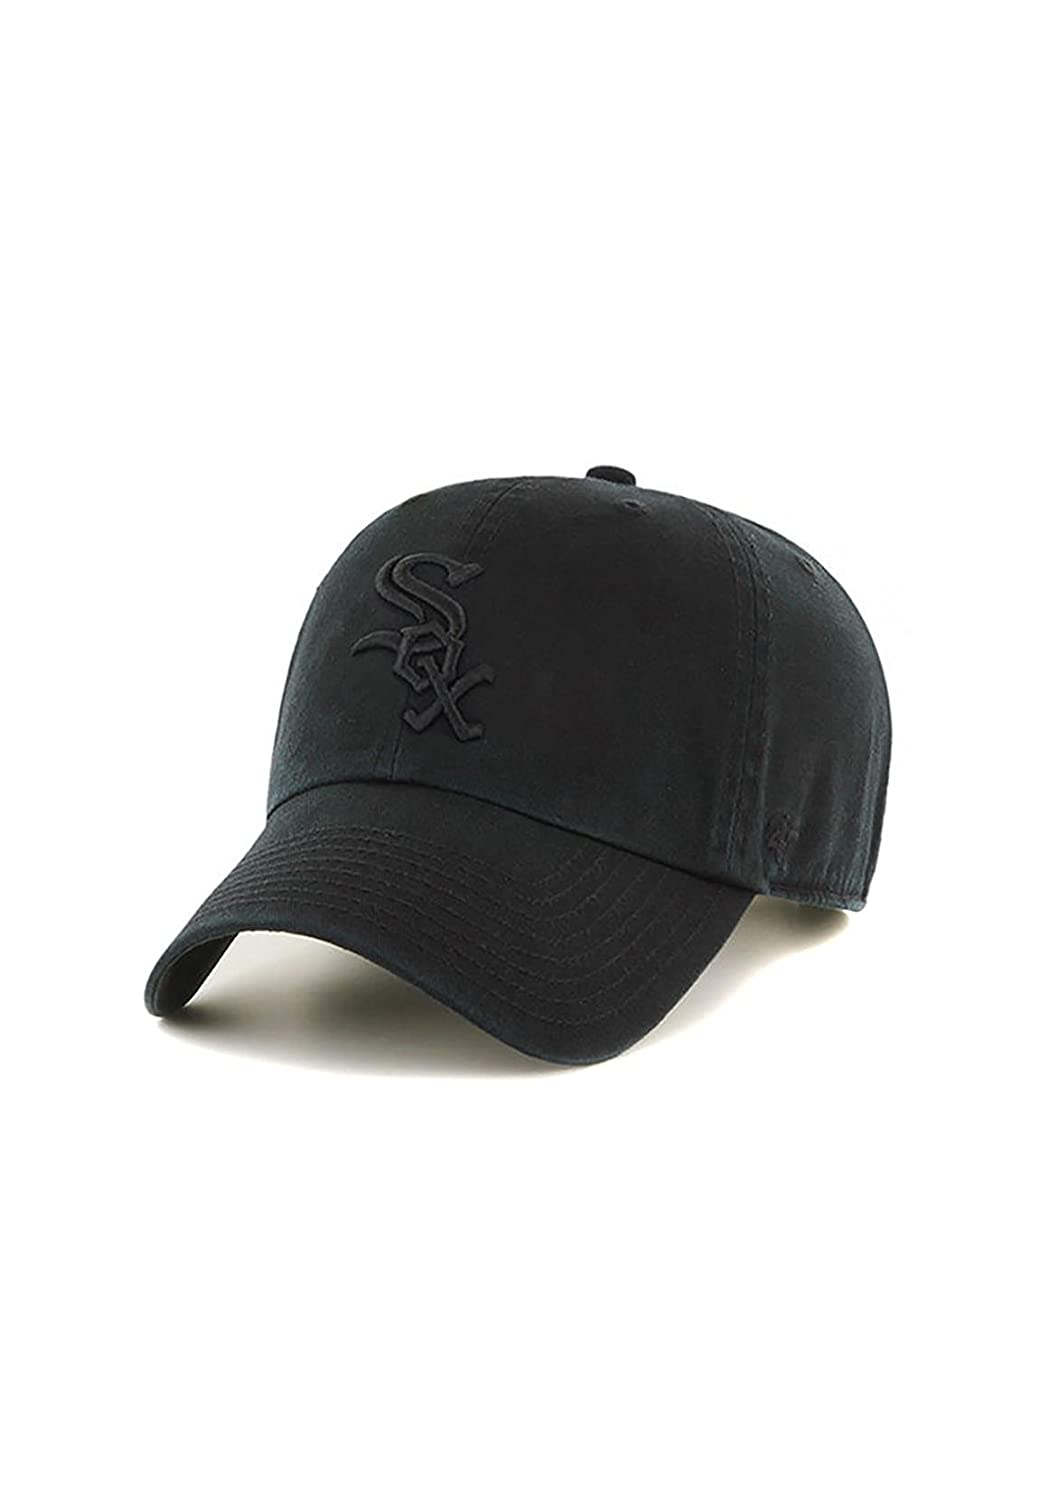 '47 Brand Chicago White Sox Clean Up MLB Strapback Hat Cap All Black Black